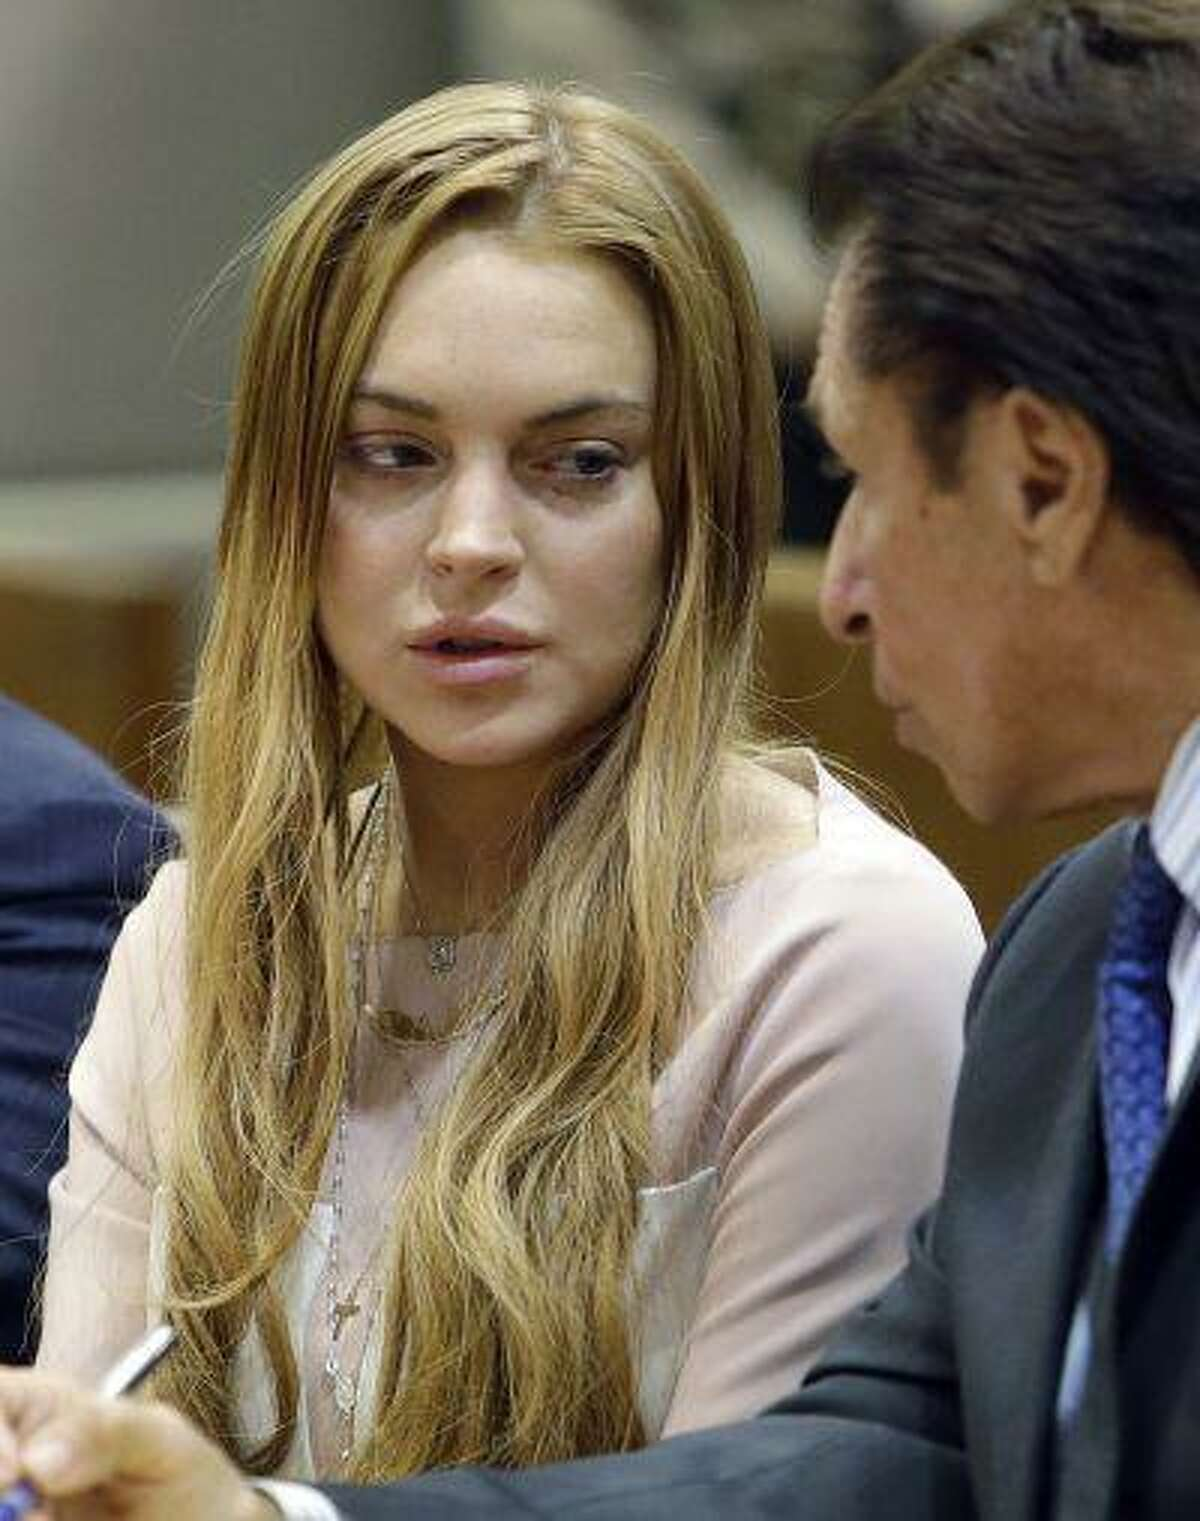 Actress Lindsay Lohan and attorney Mark Heller appear at a hearing in Los Angeles Superior Court Monday, March 18, 2013. Lohan accepted a plea deal on Monday in a misdemeanor car crash case that includes 90 days in a rehabilitation facility. The actress, who has struggled for years with legal problems, pleaded no contest to reckless driving, lying to police and obstructing officers who were investigating the accident involving the actress in June. (AP Photo/Reed Saxon, Pool)